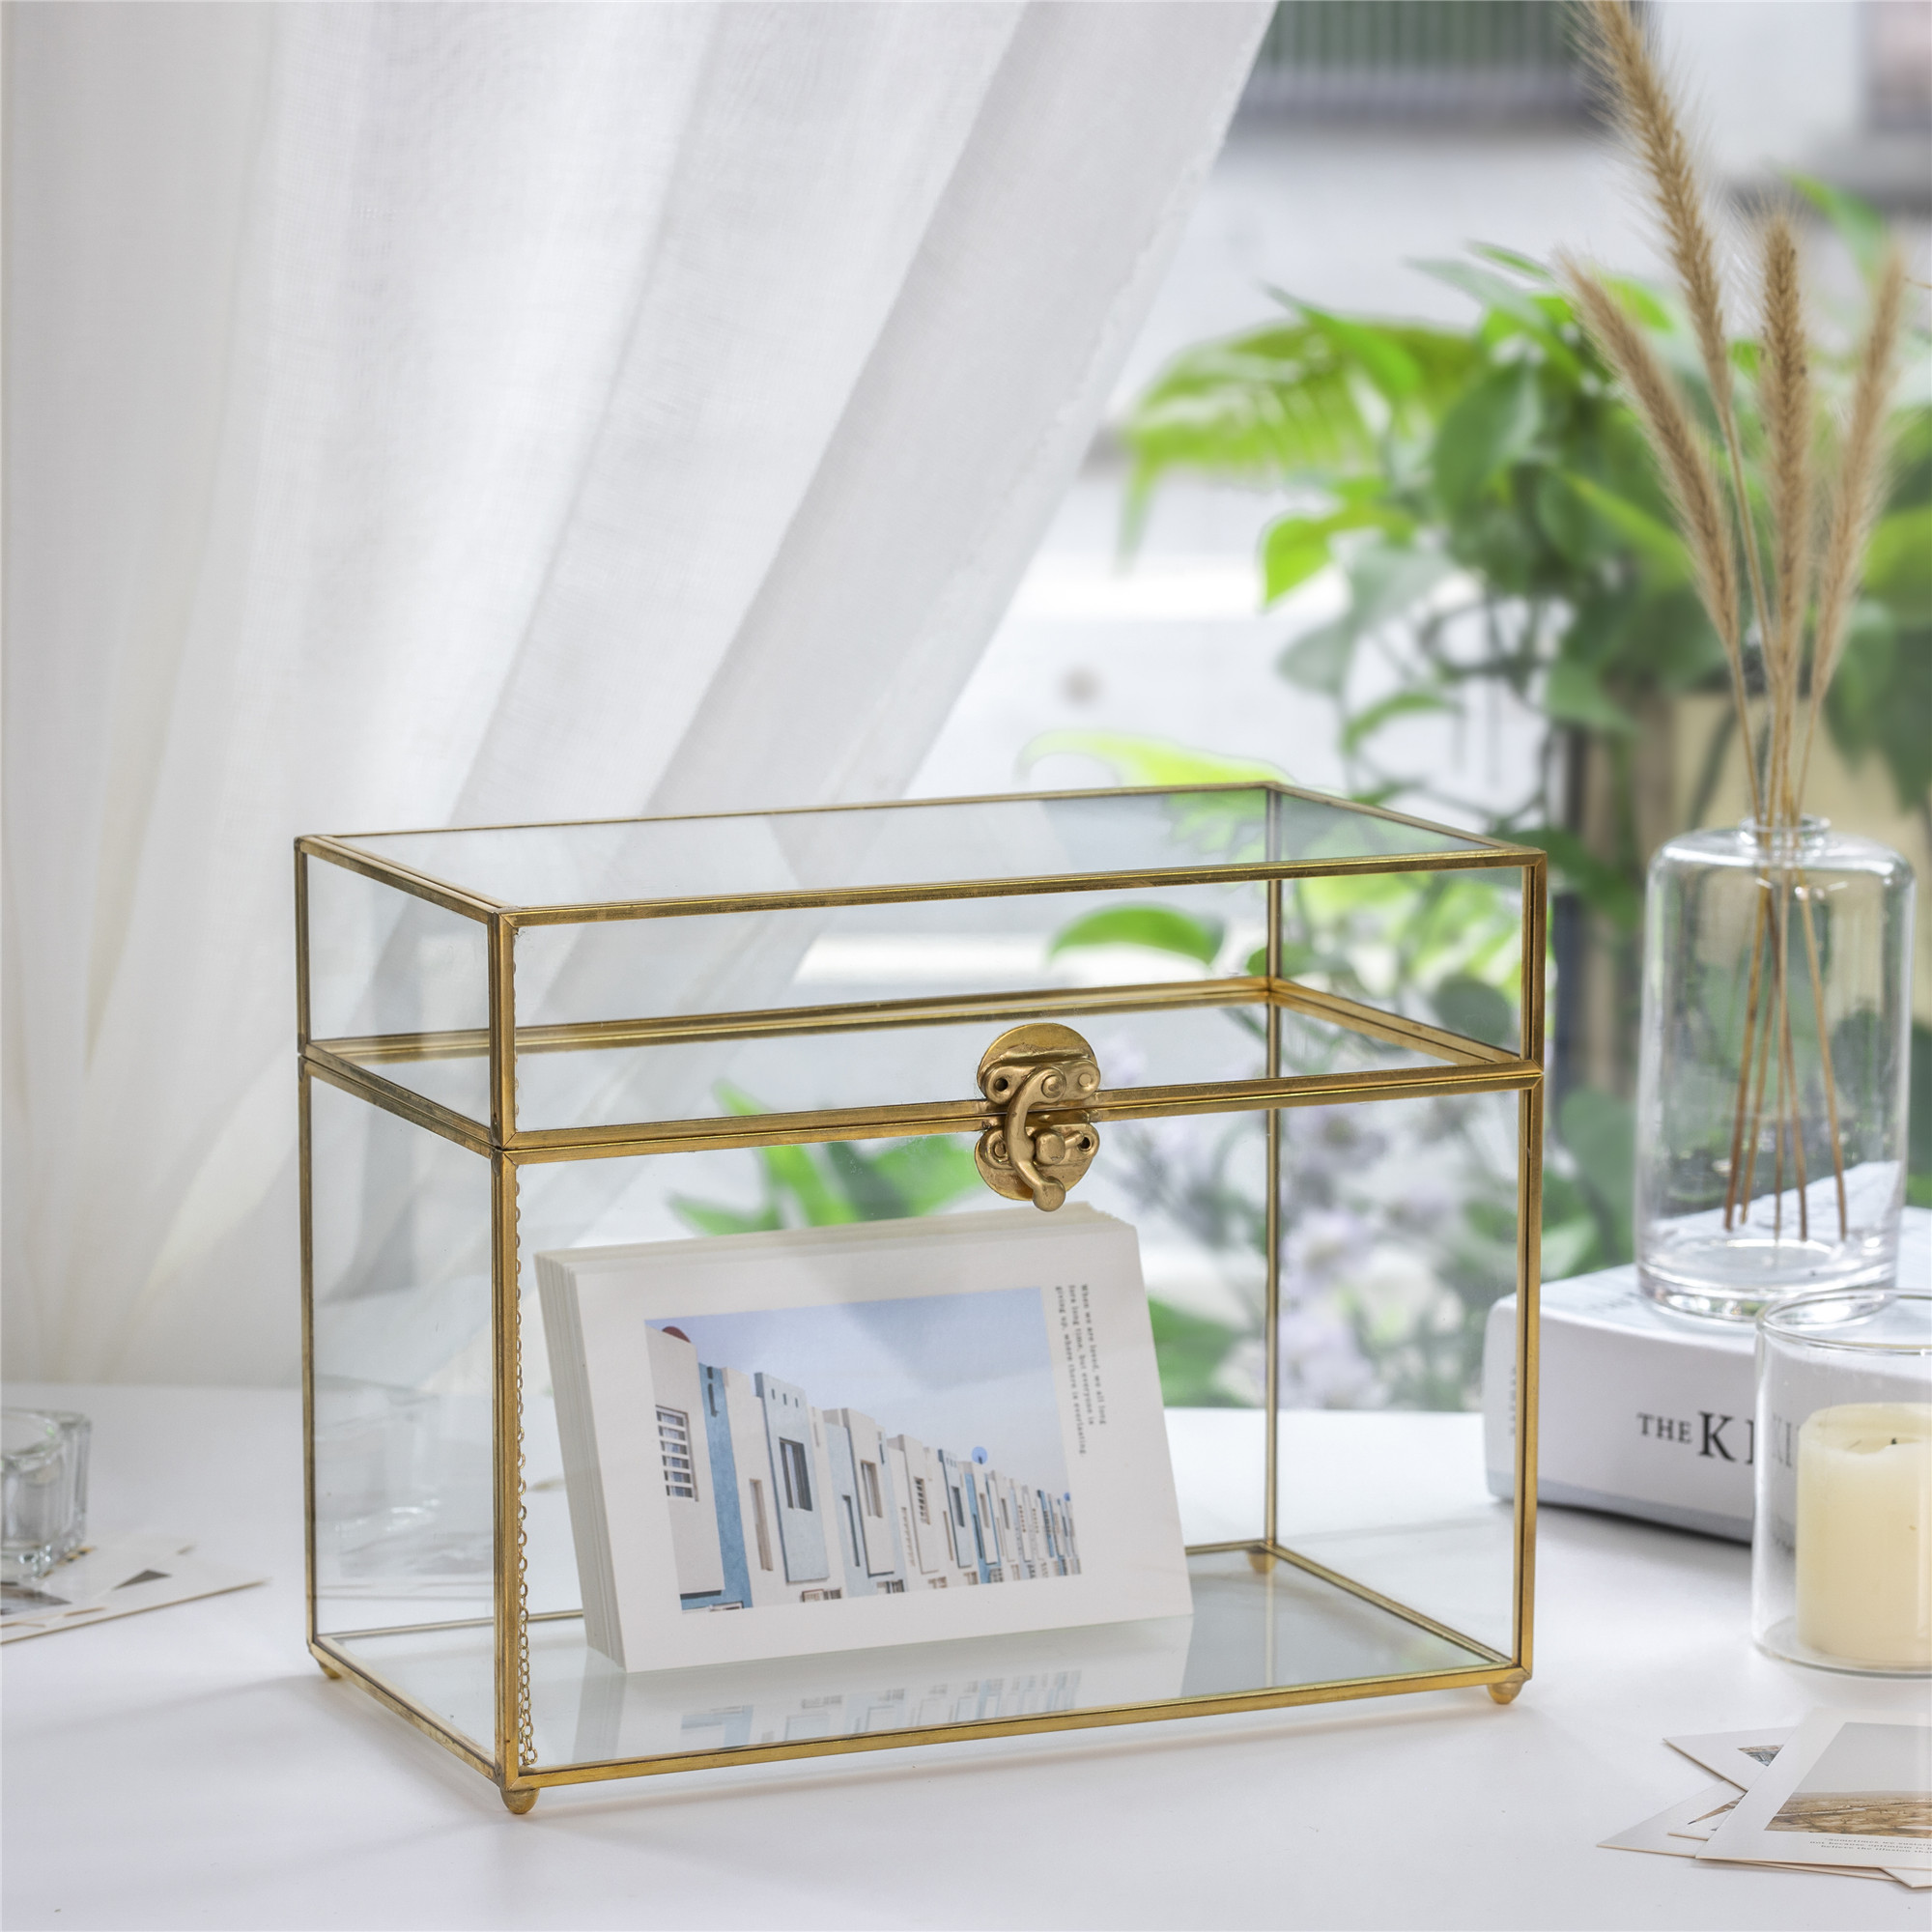 Gold Rectangle Wedding Card Box Glass Display Gift Organizer DIY Wishing Well Celebration Home Party Wedding Card Box